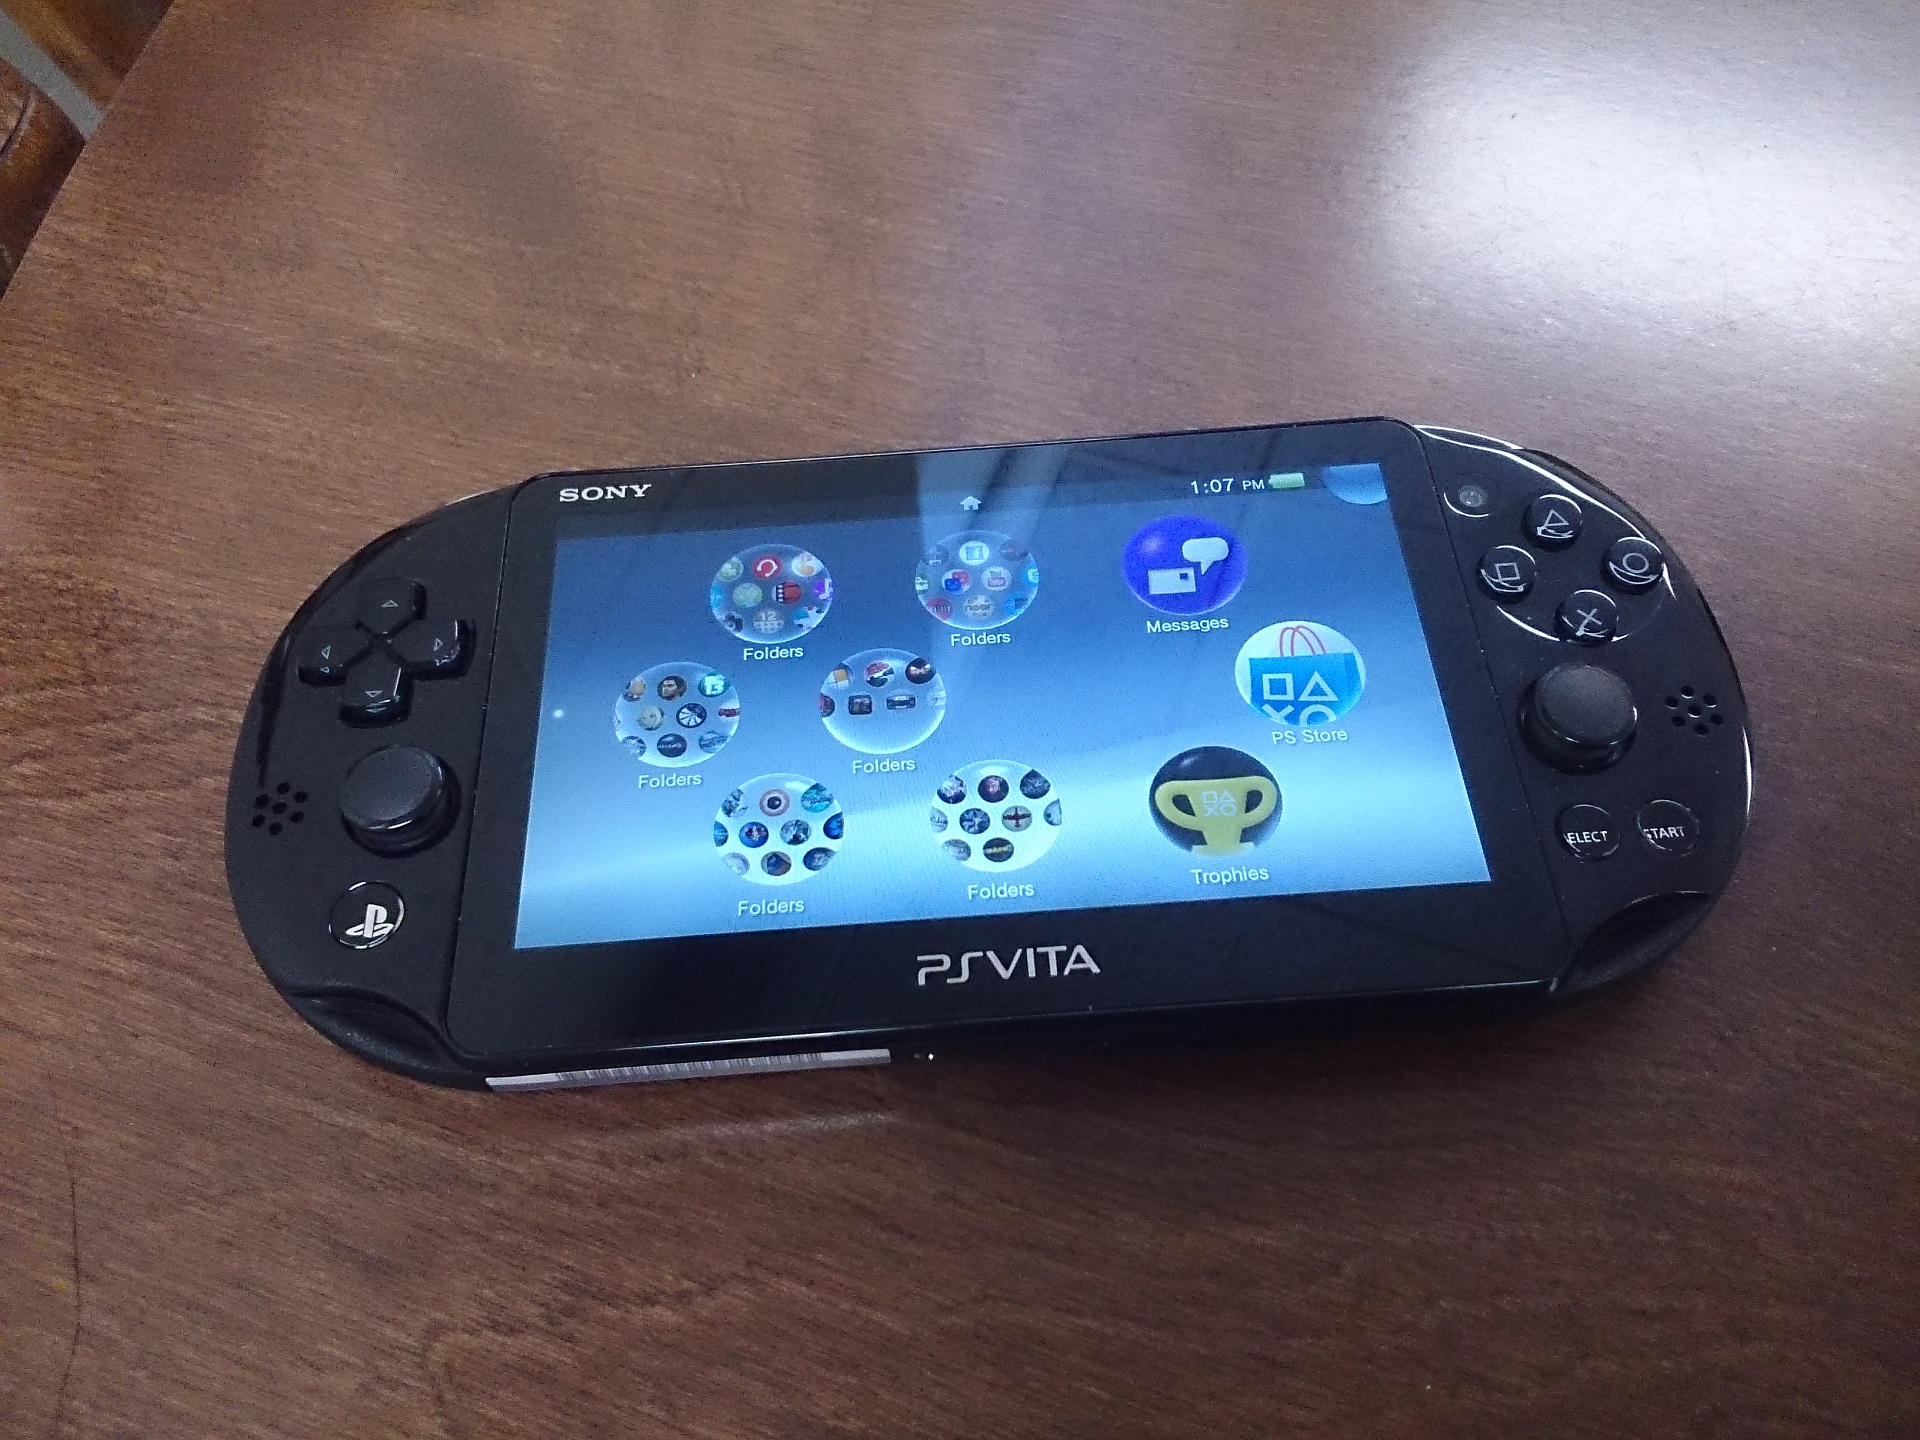 Say hello to your new Vita.